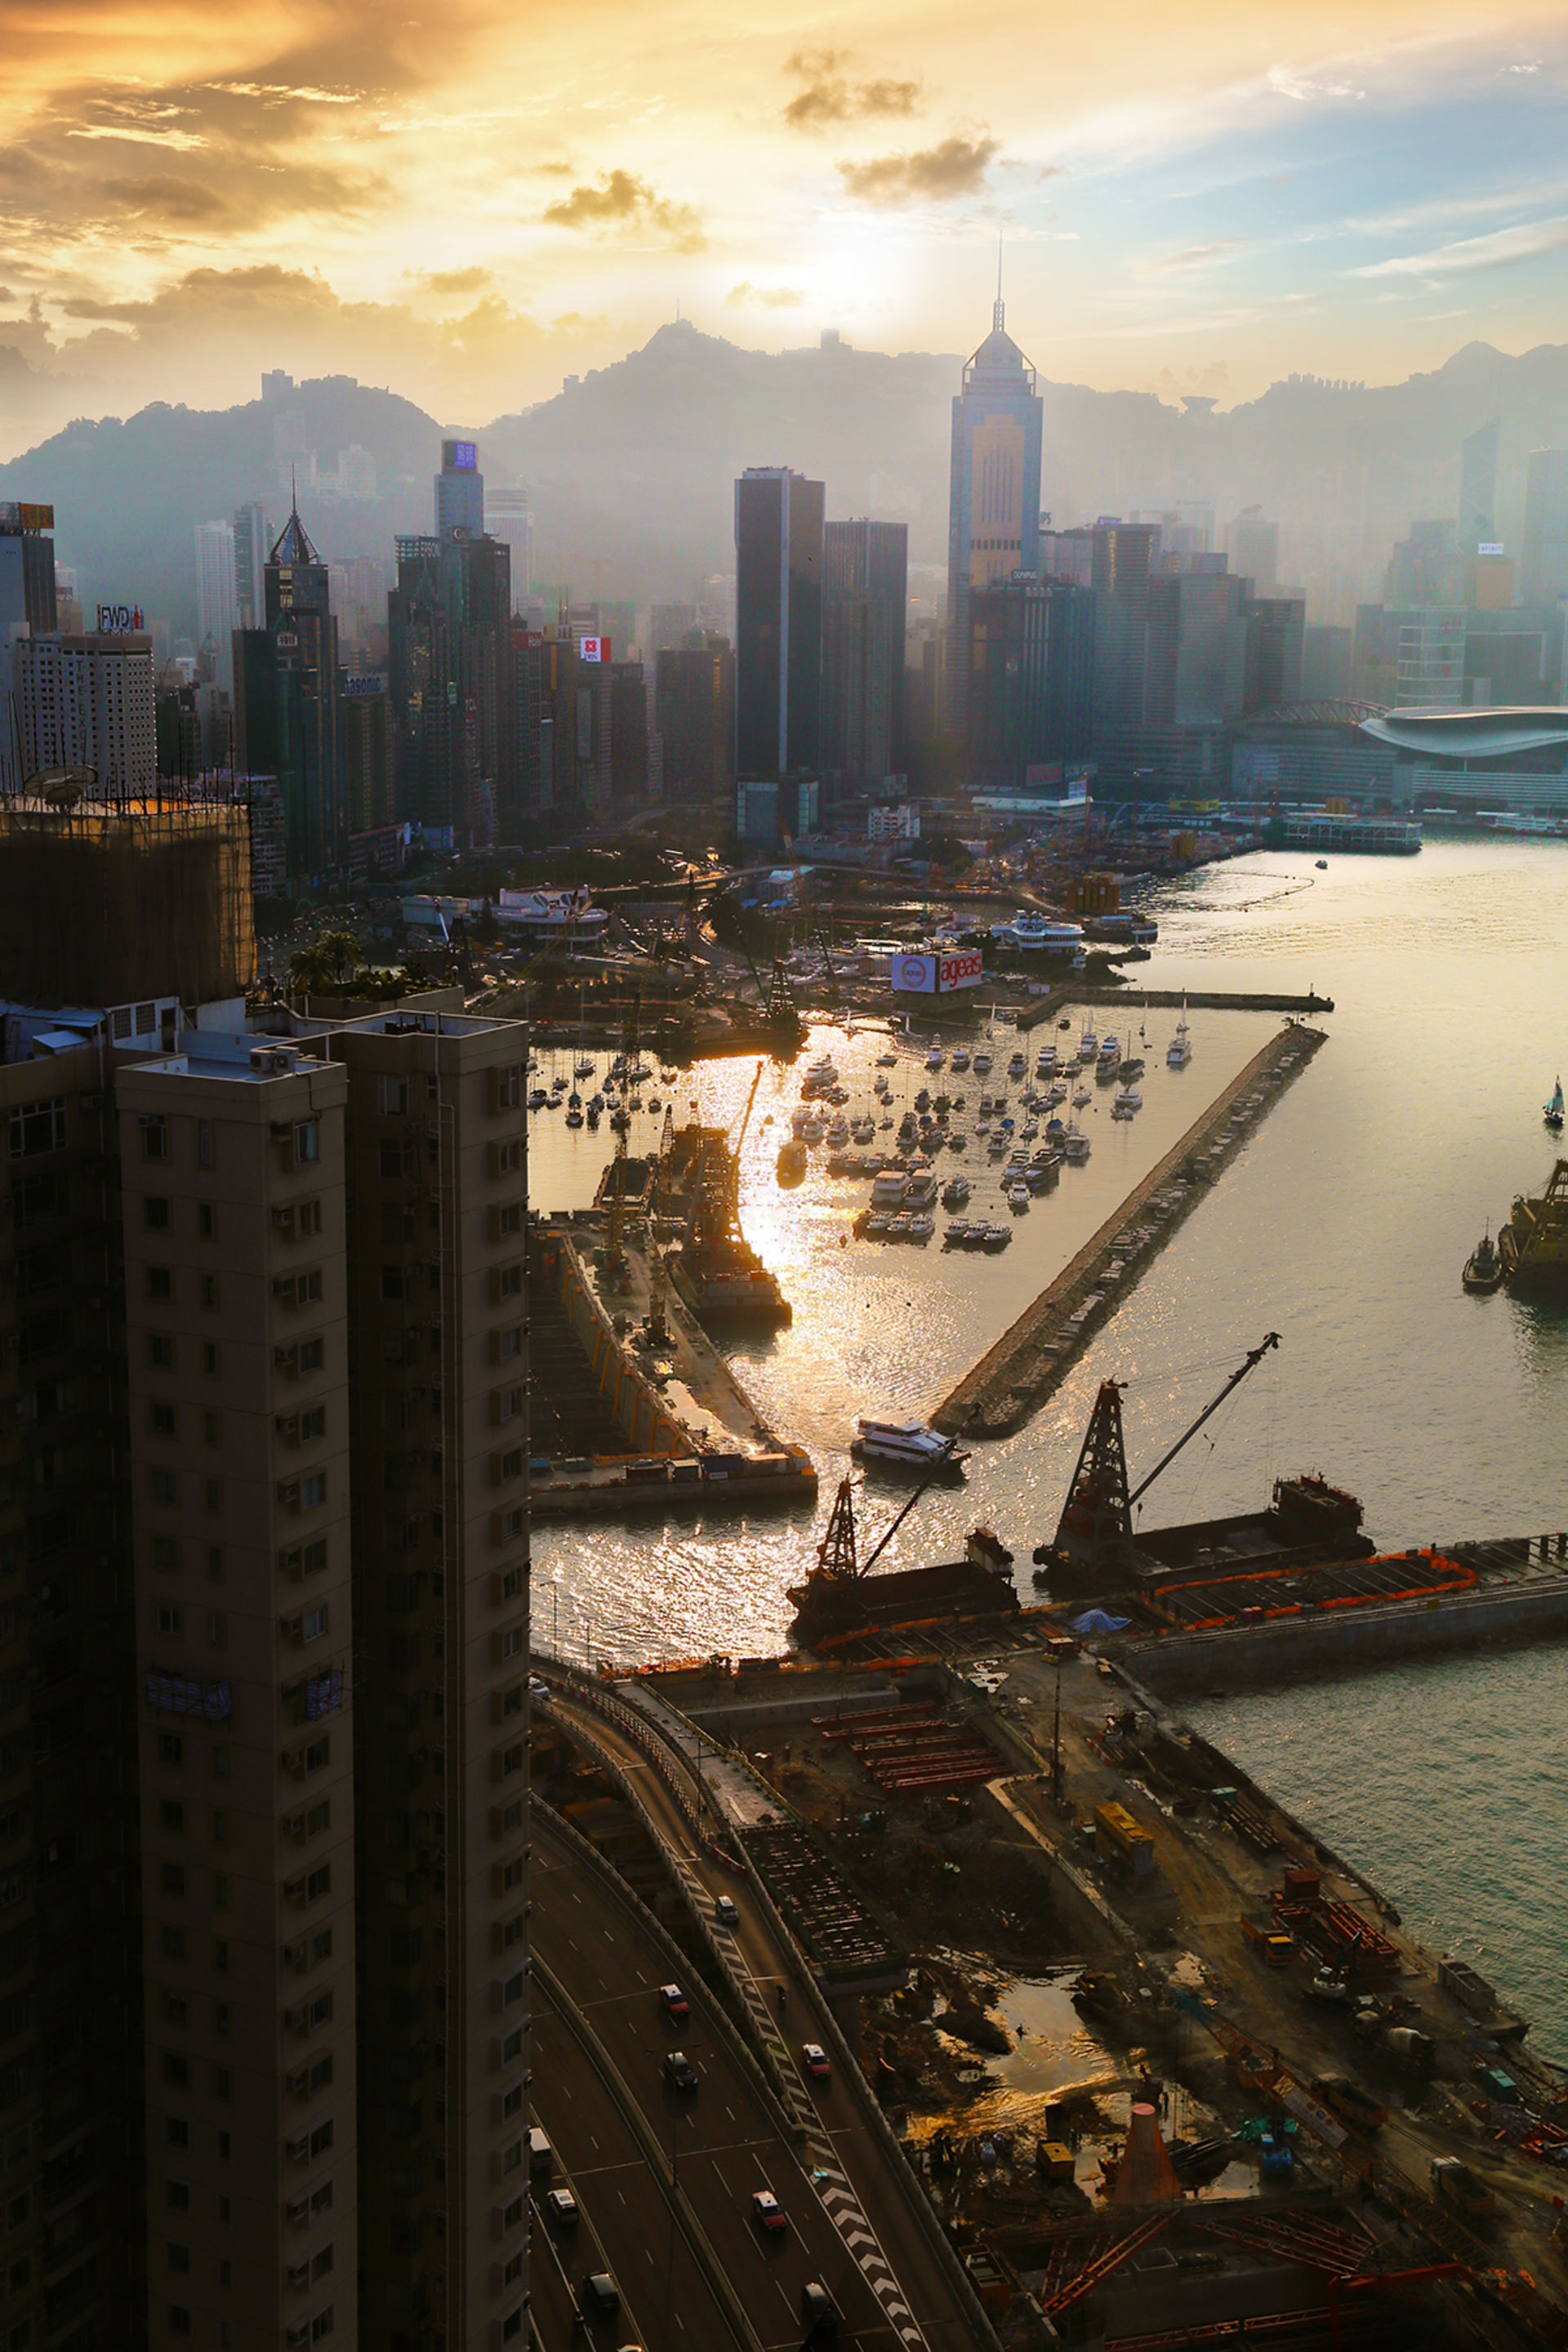 Causeway Bay under construction . Land reclamation and construction of a new highway from Quarry Bay to Central